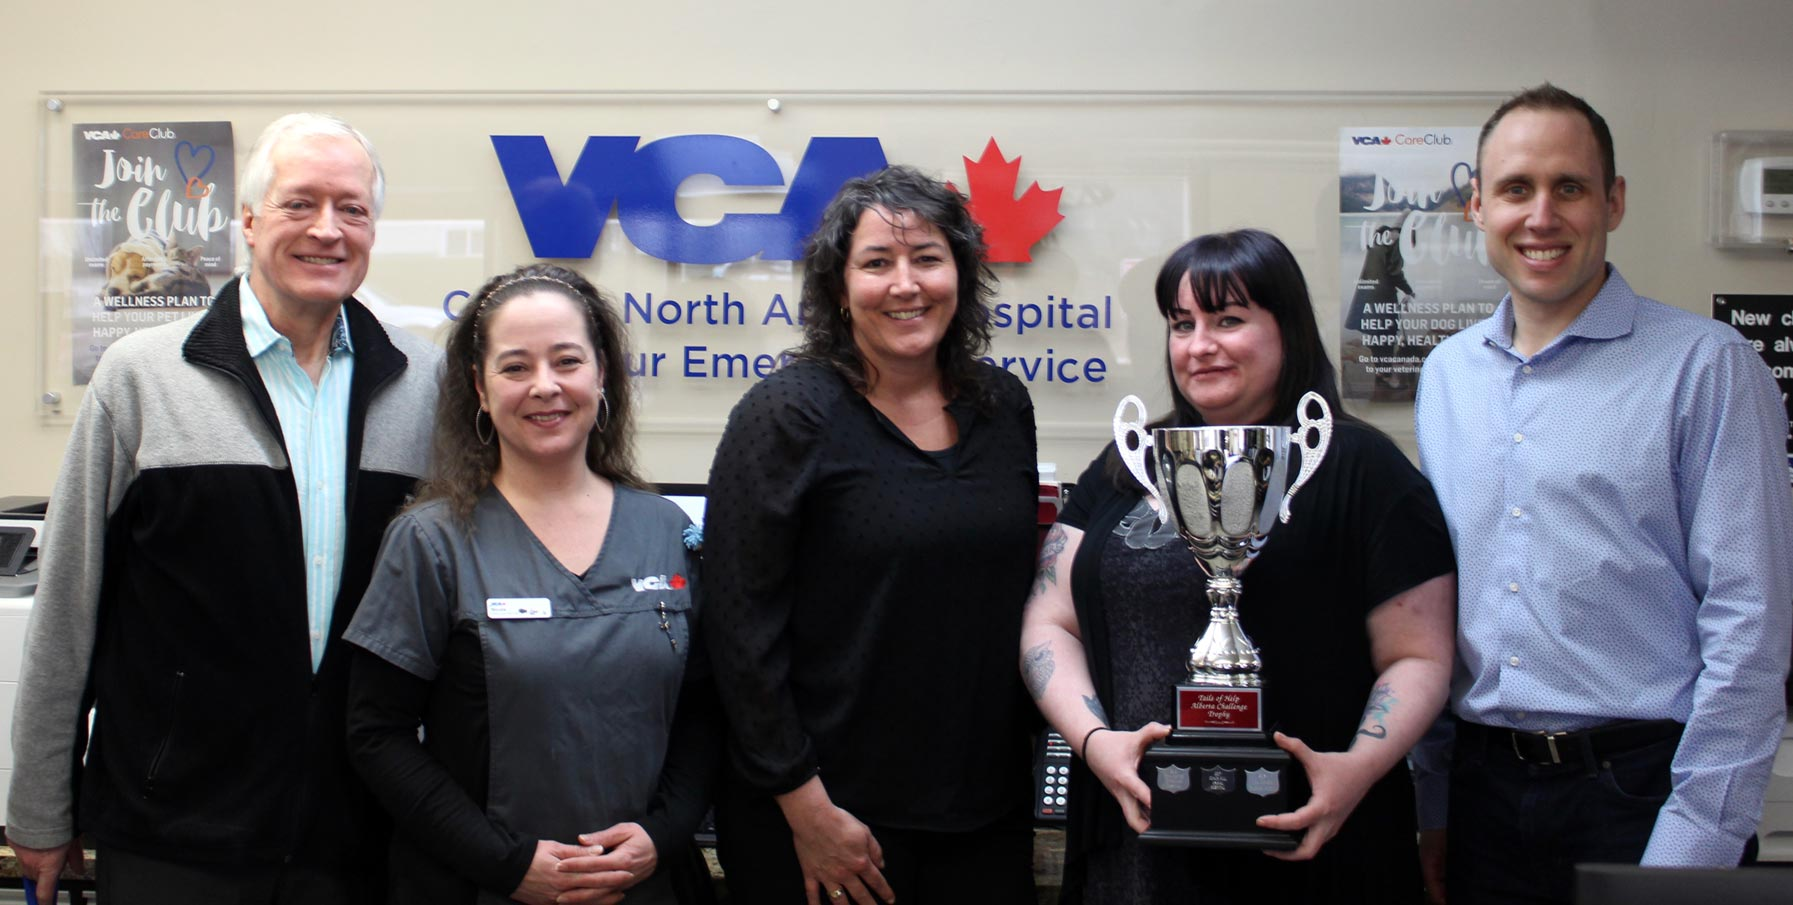 2018 Alberta challenge trophy presentation to winners: VCA canada calgary north animal hospital